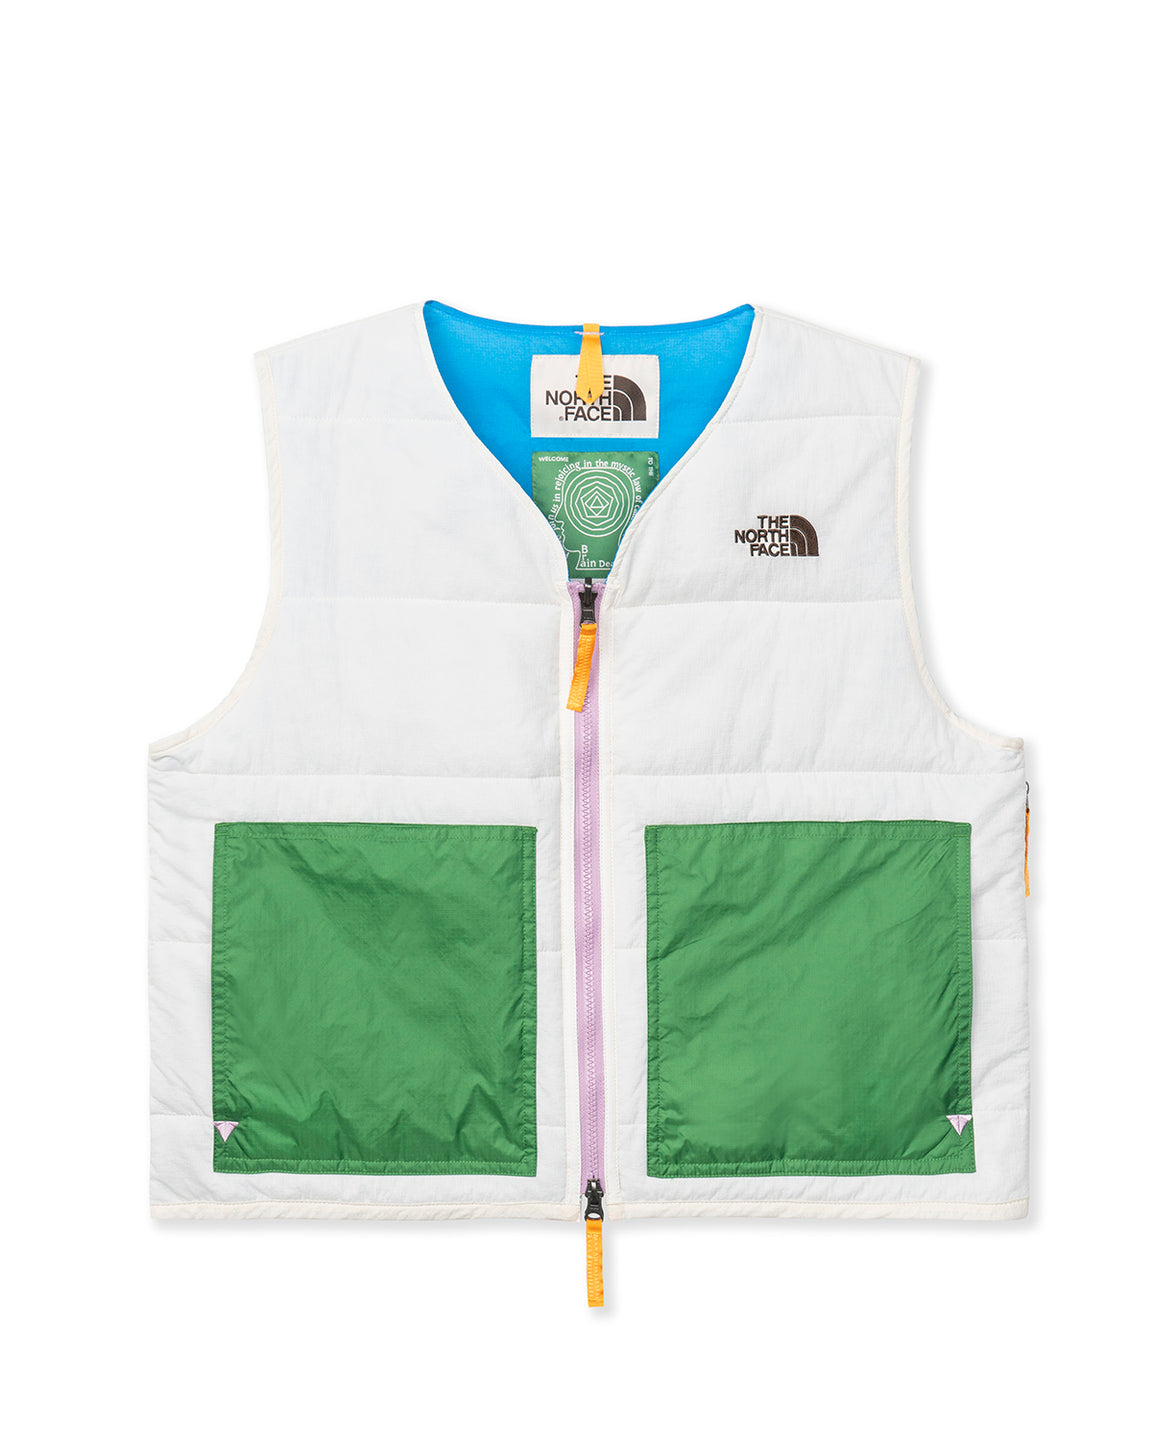 The North Face x Brain Dead 68 Sierra Vest - Vintage White